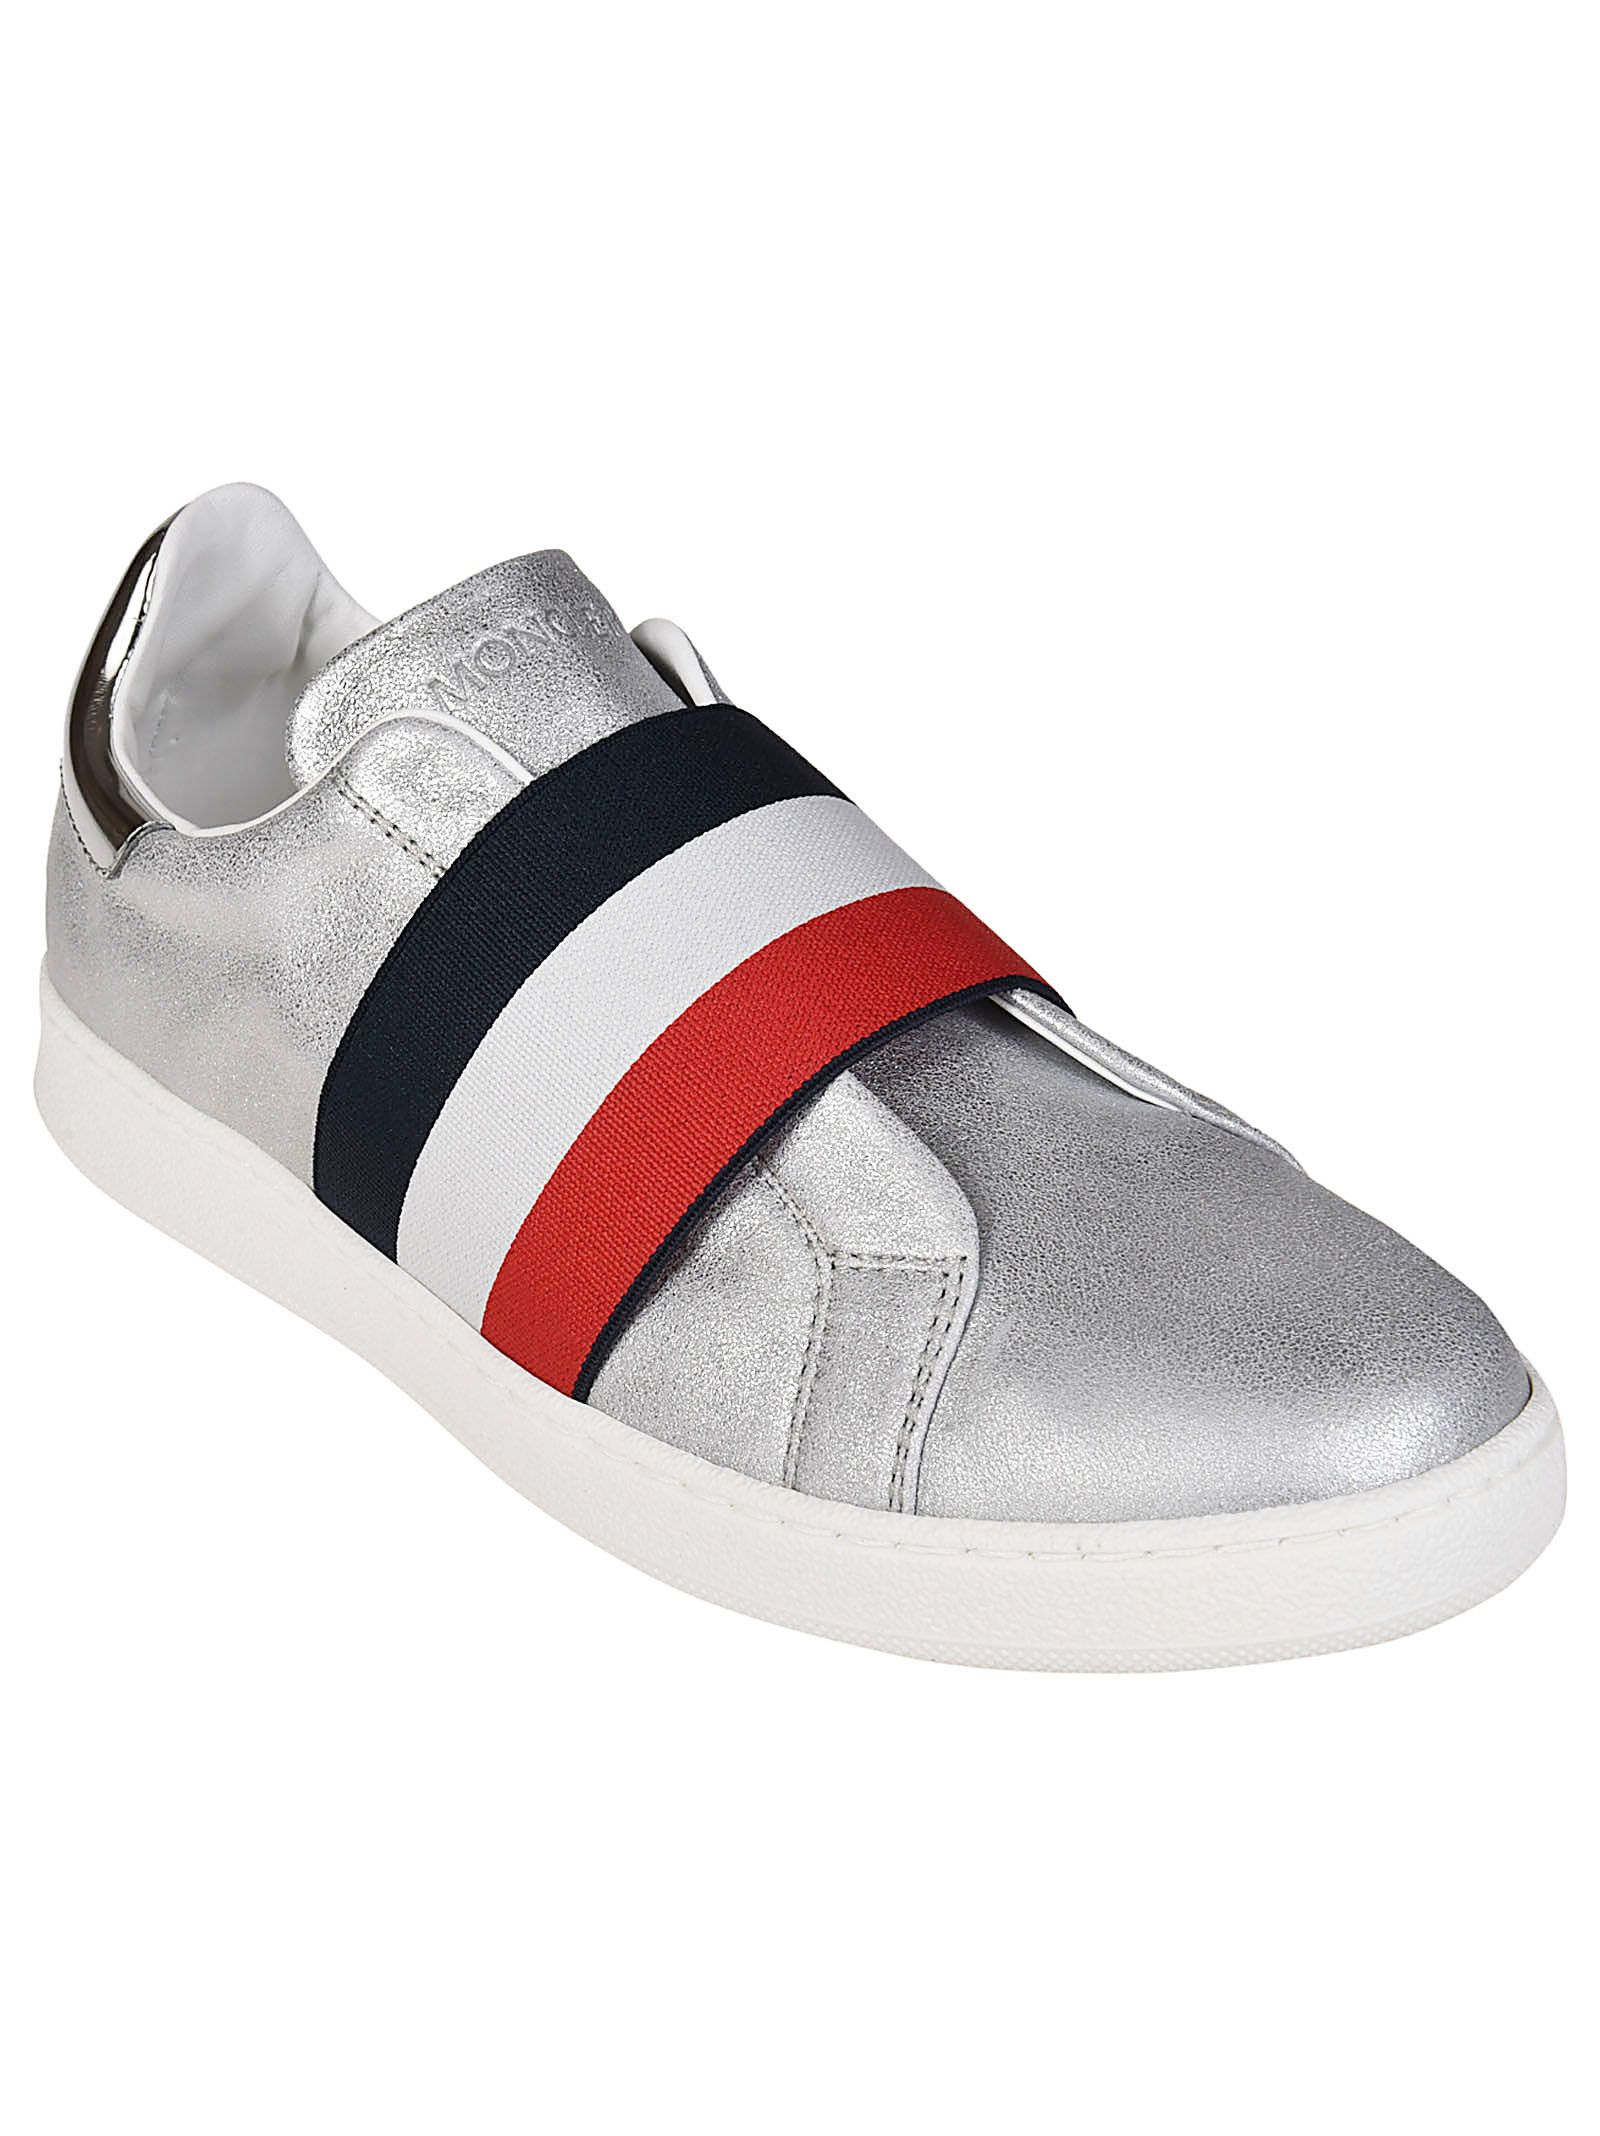 Find Great For Sale Fast Delivery Cheap Price Moncler Alizee Slip-on Sneakers Outlet Lowest Price Cheap Sale Outlet Locations Footlocker Cheap Price LhohEqG